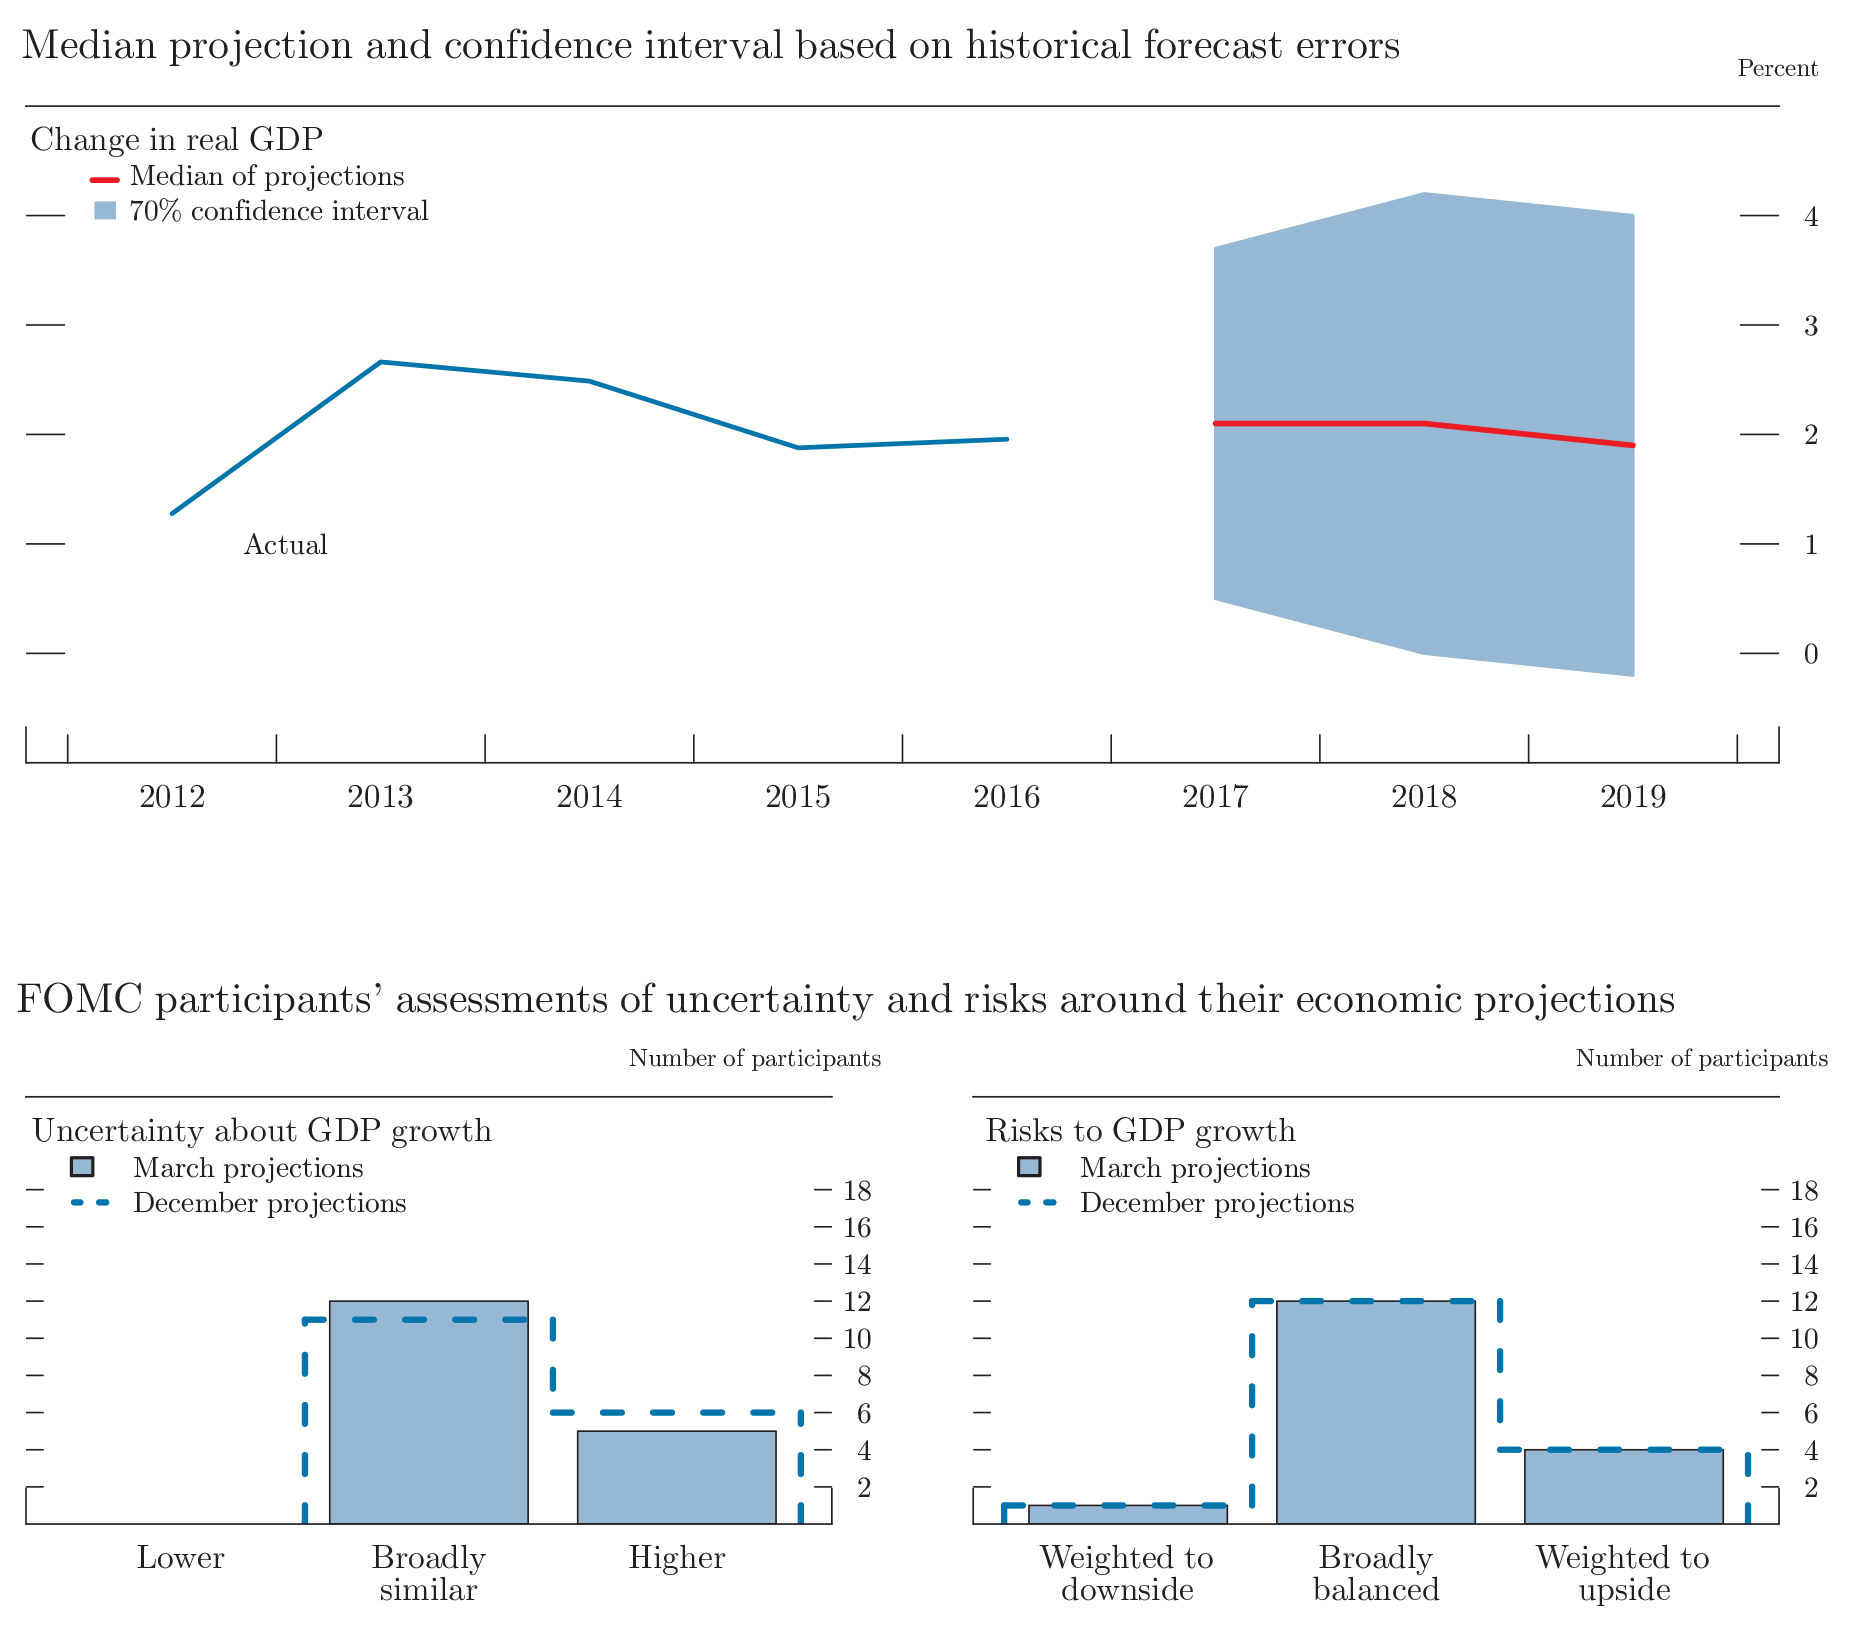 Figure 4.A. Uncertainty and risks in projections of GDP growth. See accesible link for data.